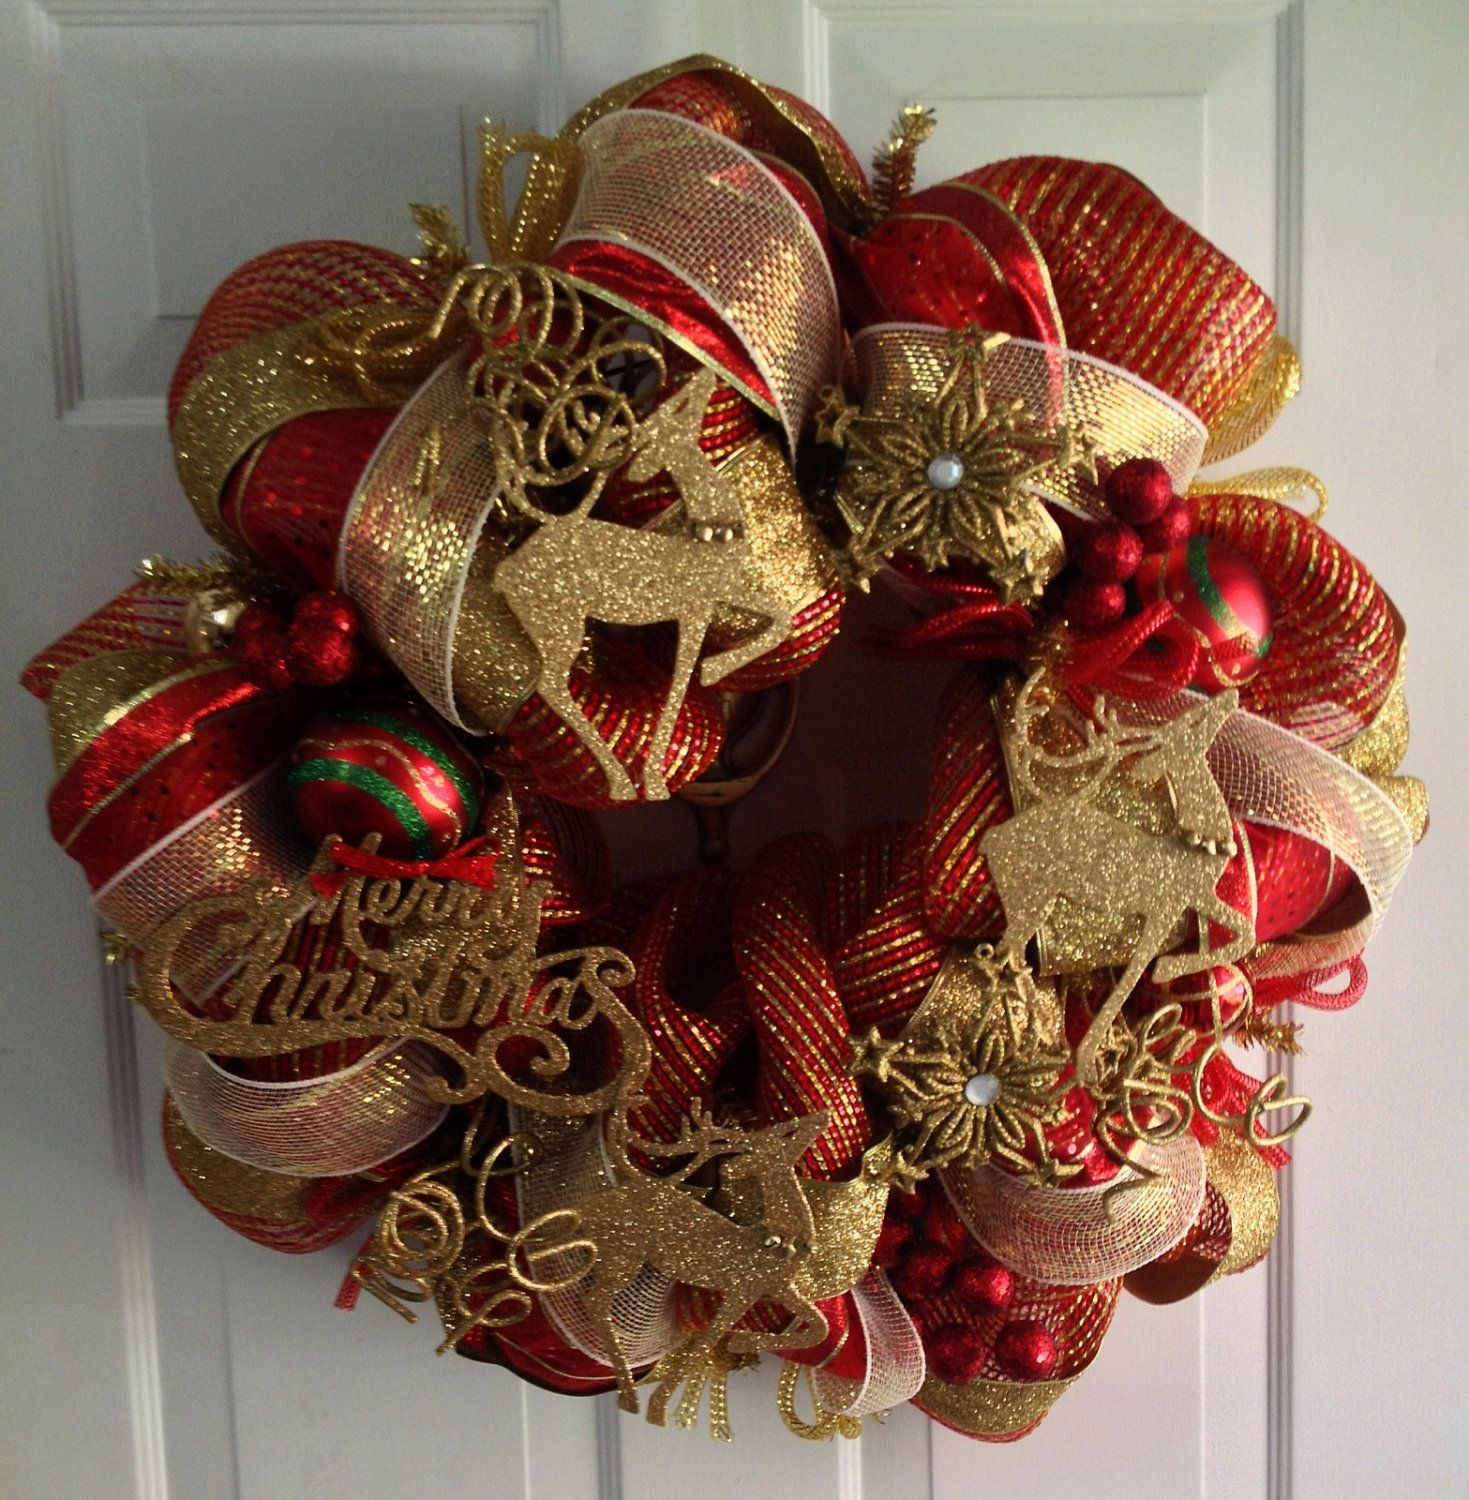 Red and gold deco mesh christmas wreath via etsy for Burlap wreath with lights